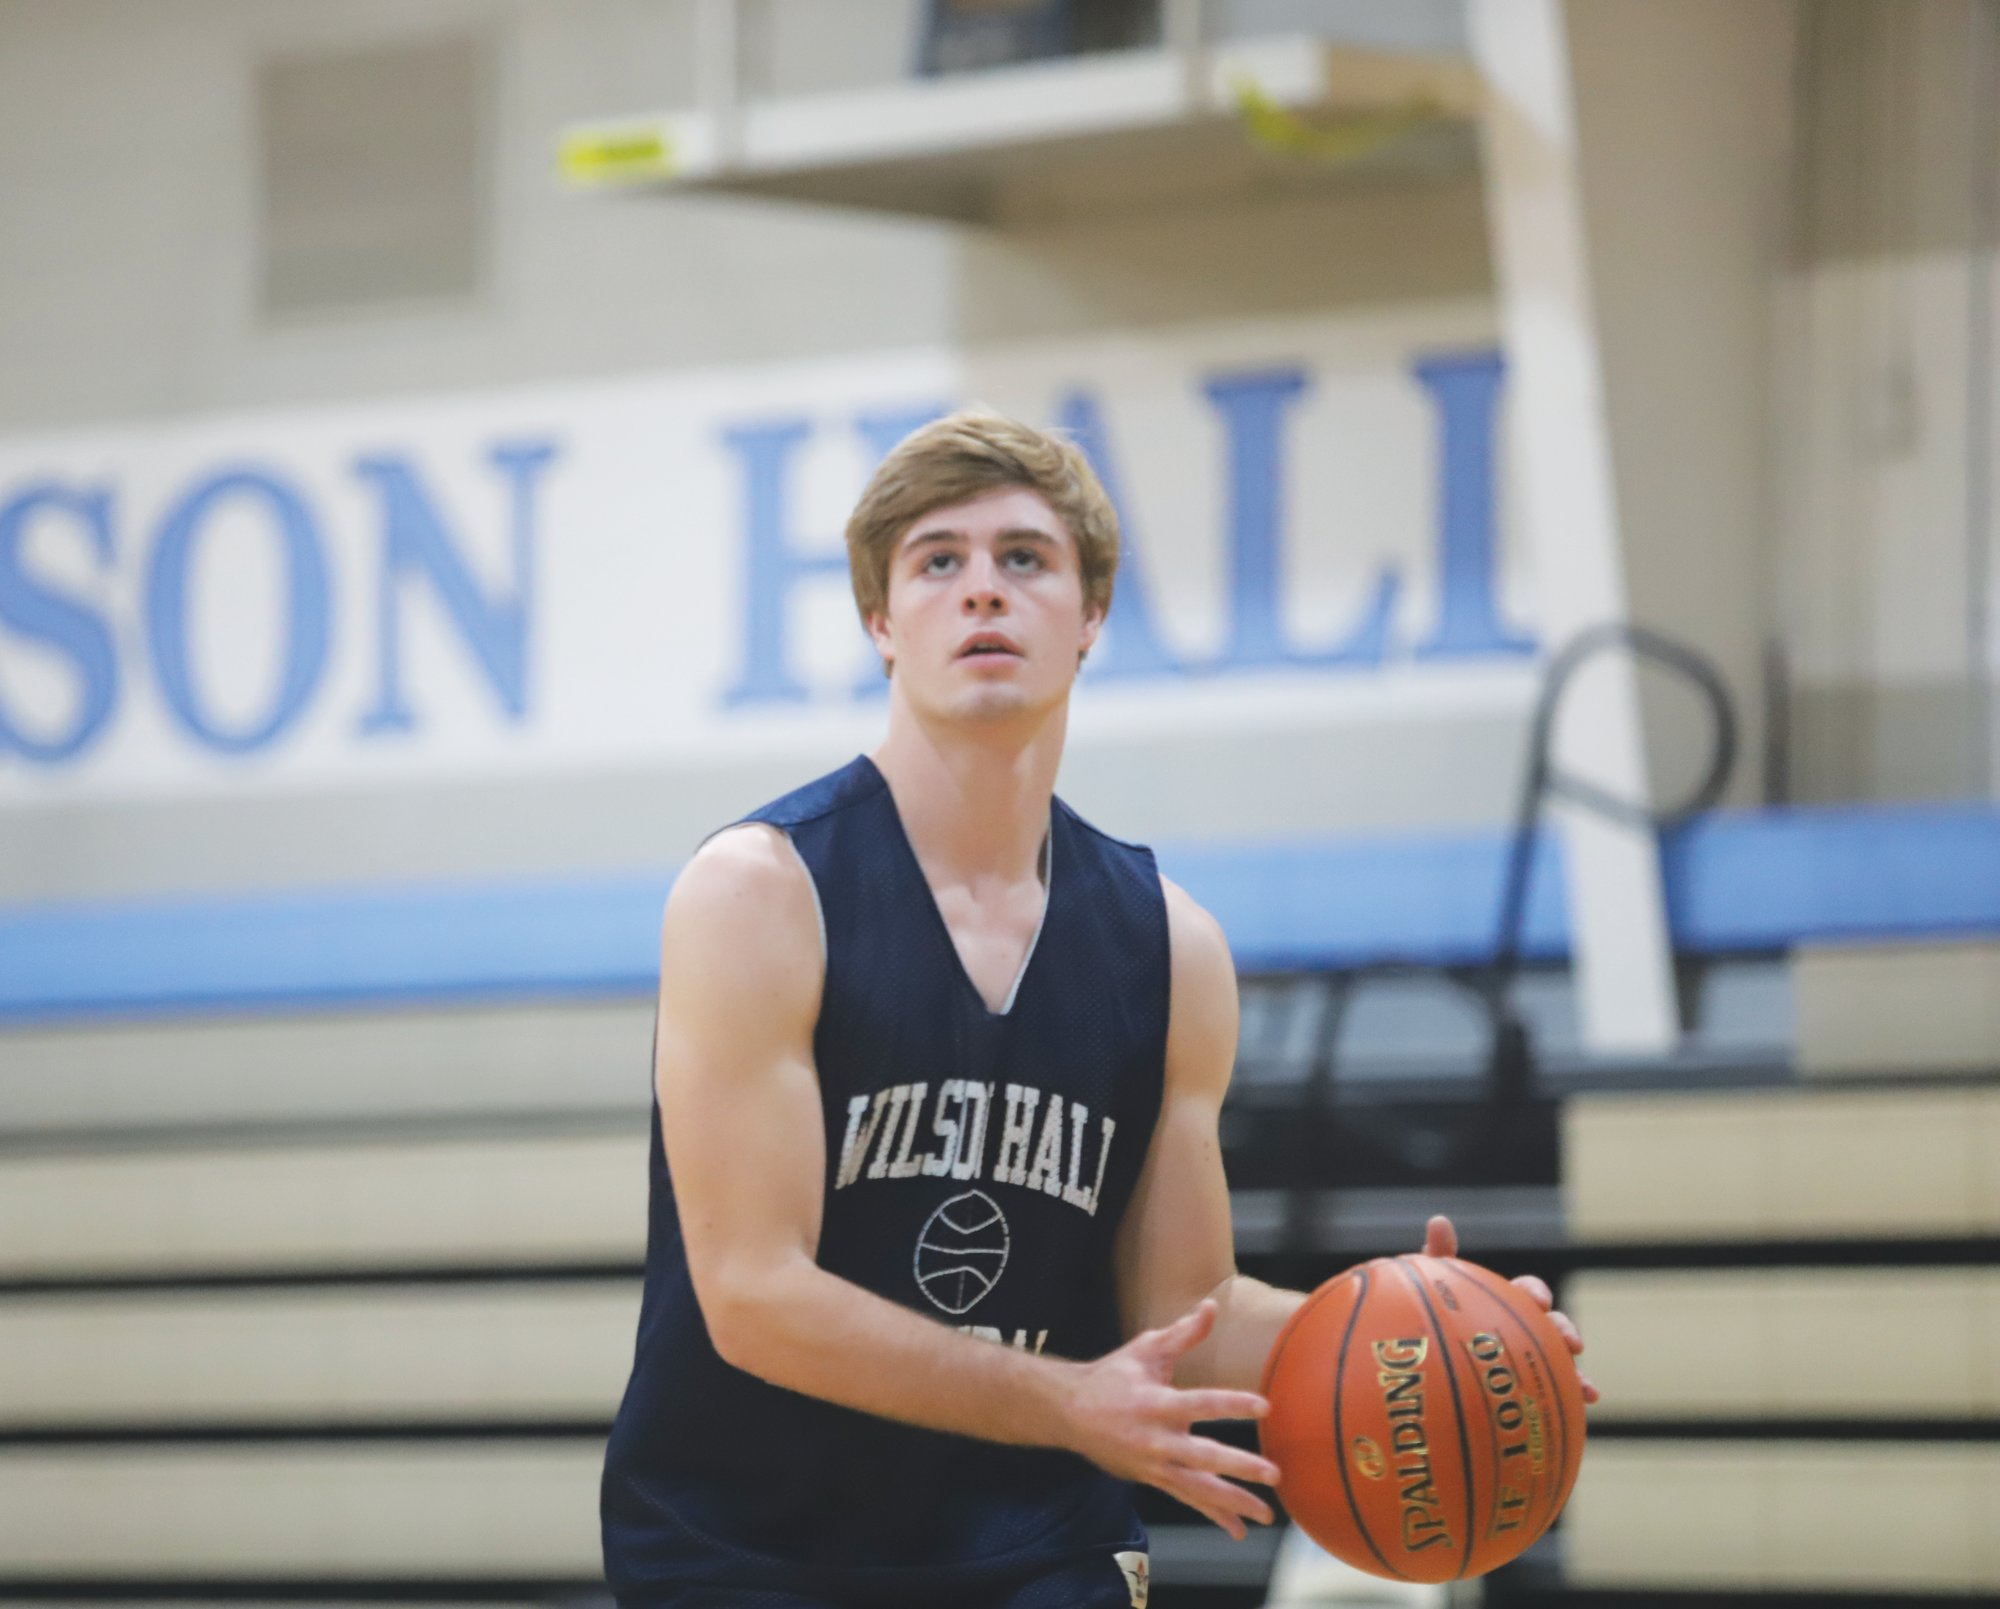 Wilson Hall forward Graham VanPatten works during practice on Monday. VanPatten and the Barons will face King's Academy for their season opener on Tuesday.